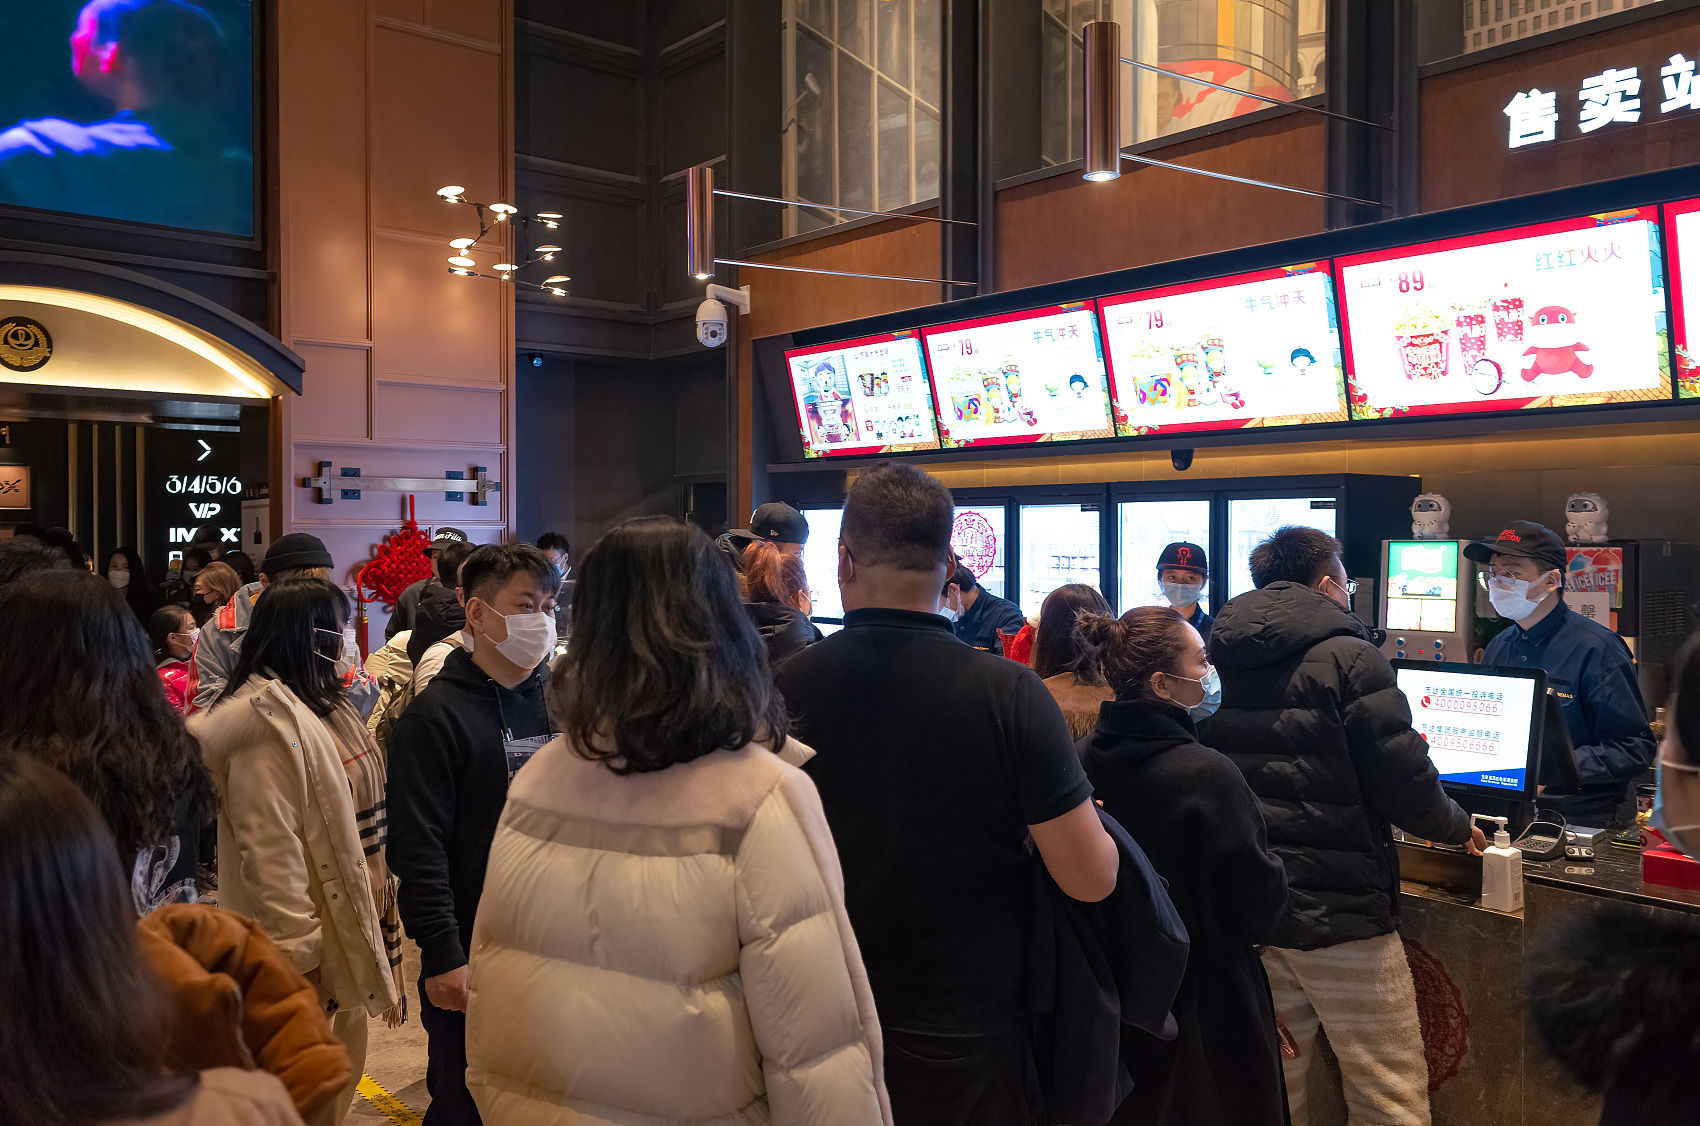 China's box office receipts boom during Spring Festival holiday